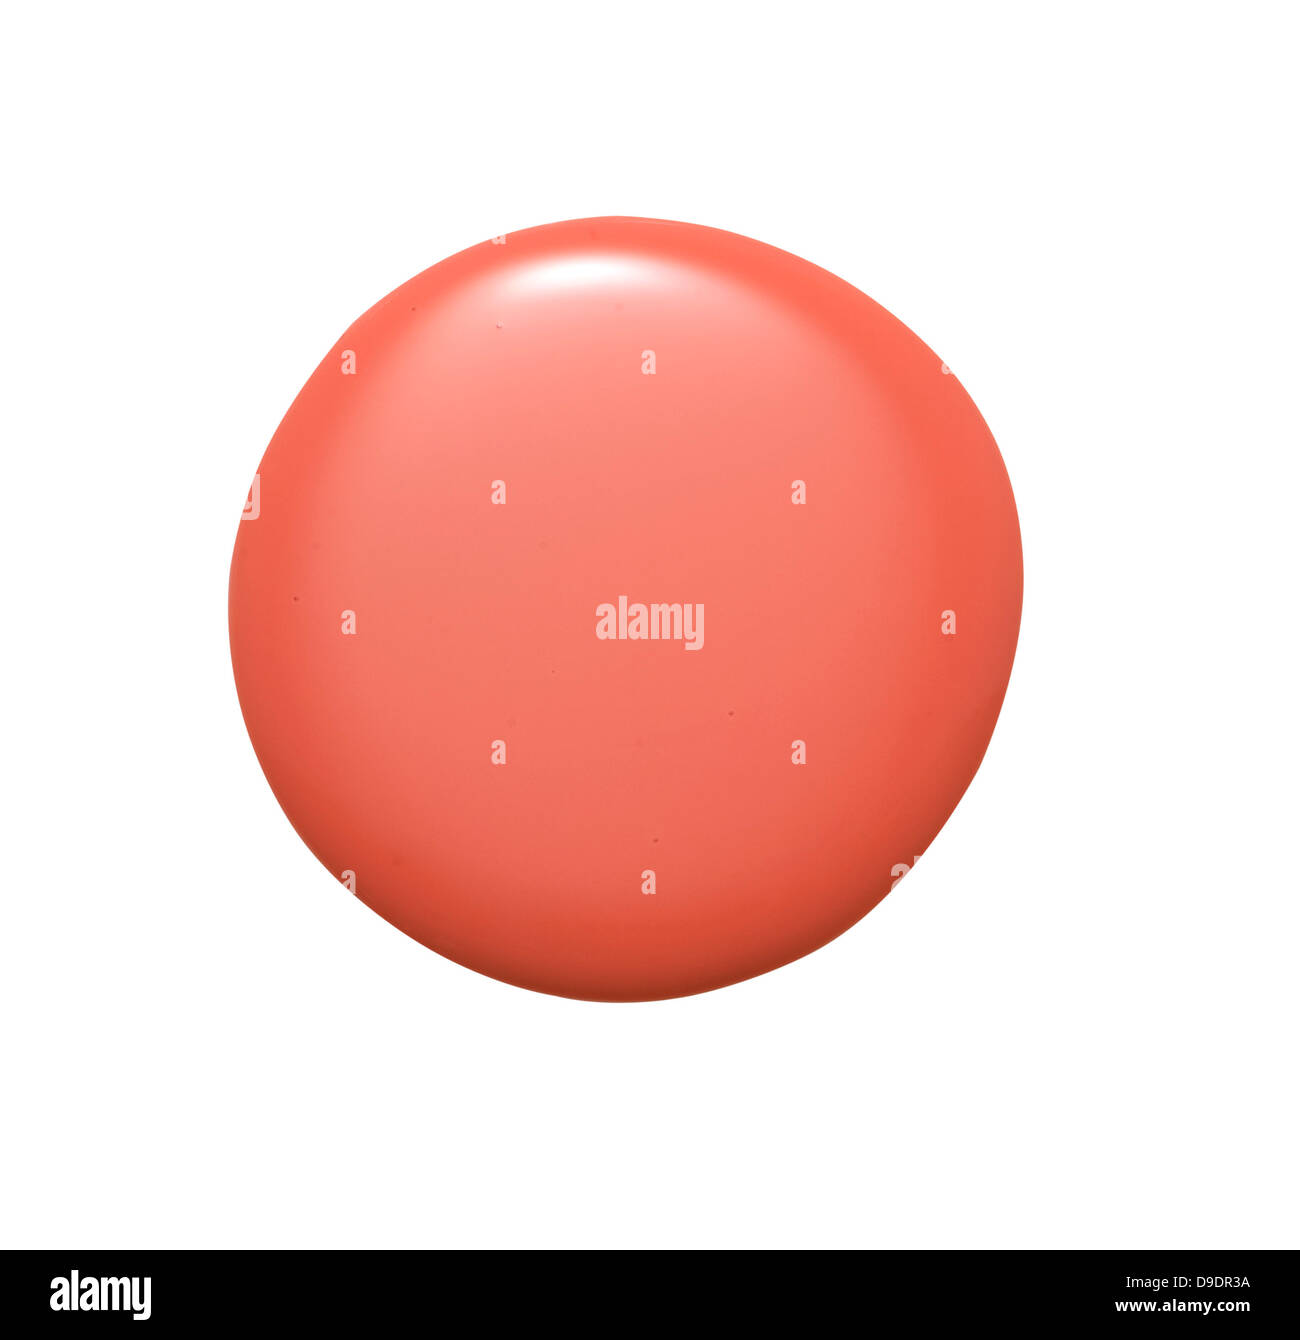 Coral Nail Polish Blob Cut Out Onto A White Background